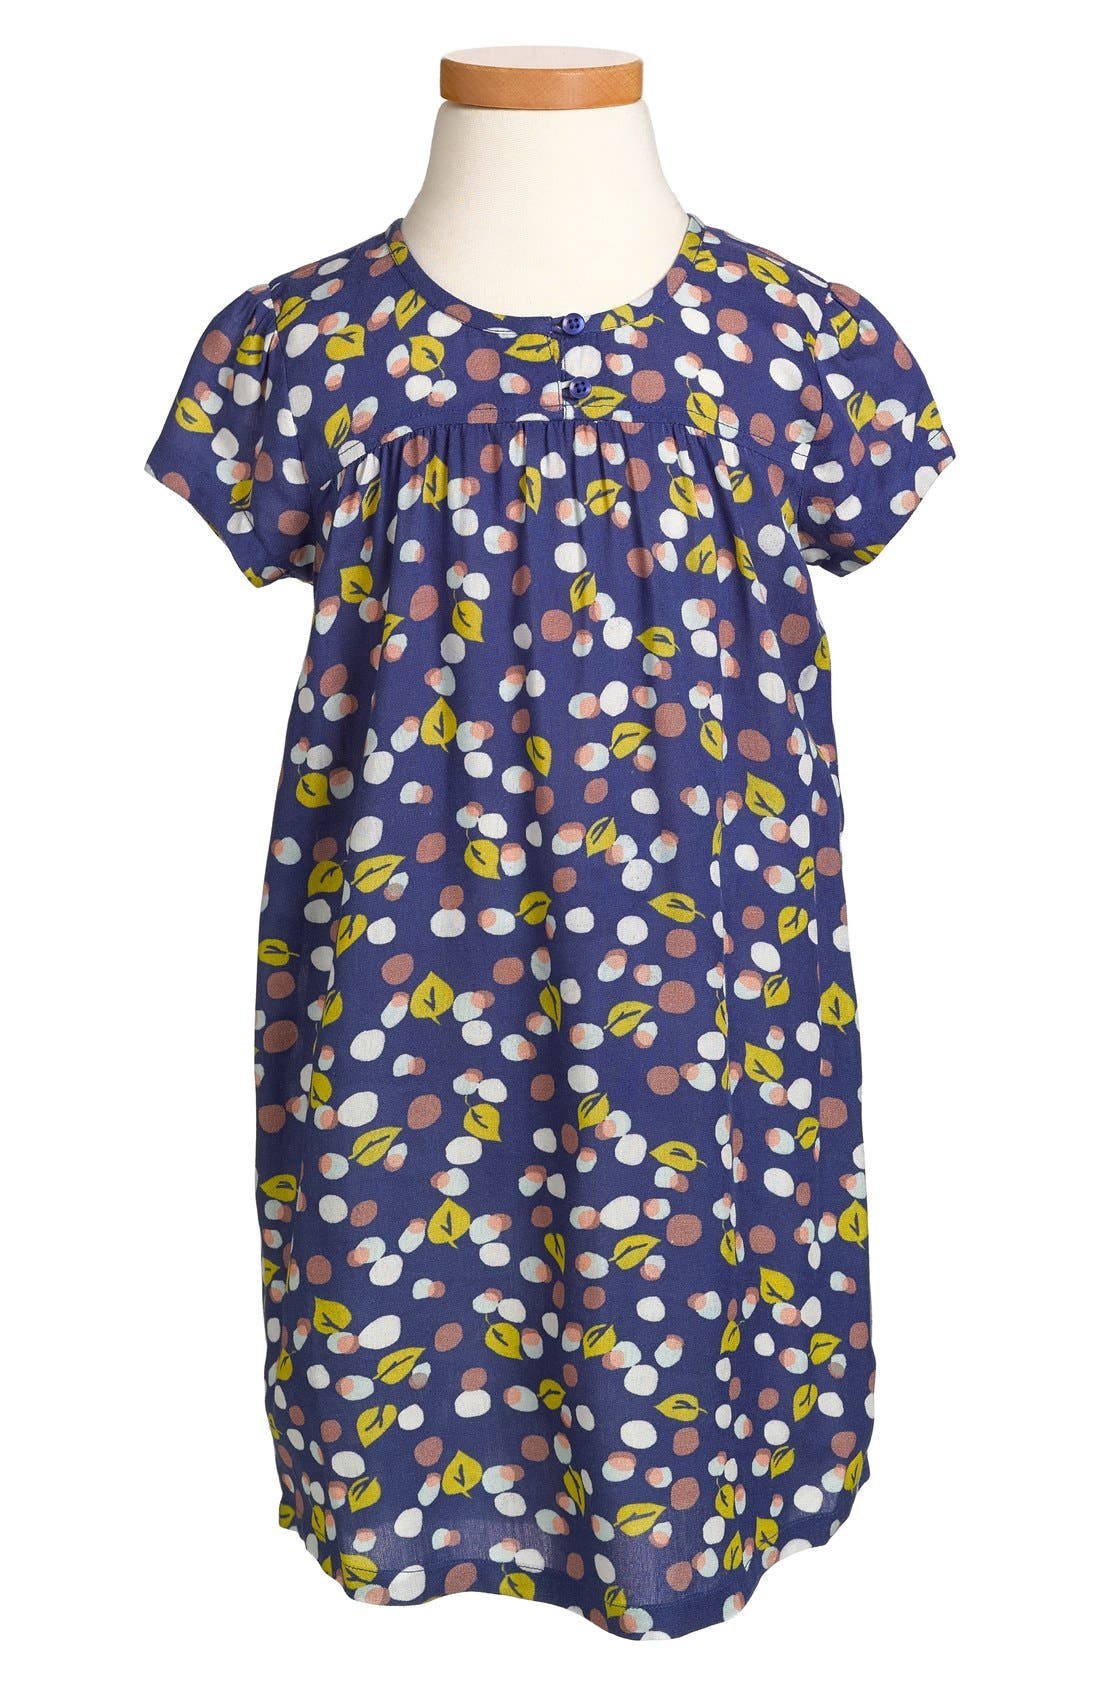 Alternate Image 1 Selected - Tucker + Tate 'Akira' Floral Print Dress (Toddler Girls, Little Girls & Big Girls)